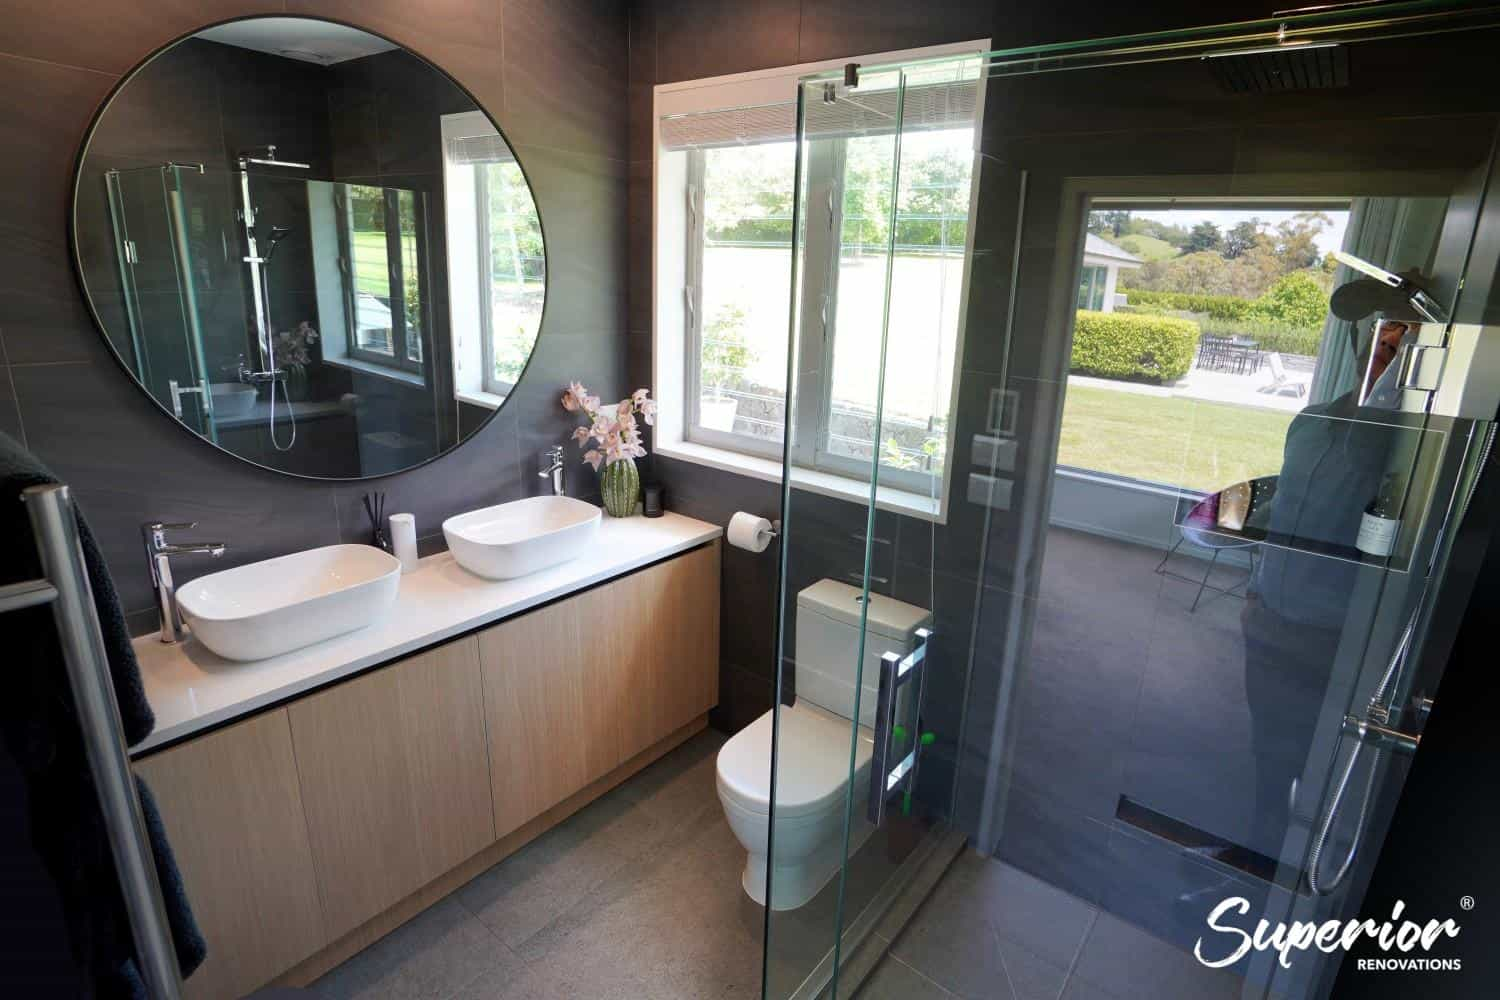 Luxury-Bathroom-Design-Redvale-24, Kitchen Renovation, Bathroom Renovation, House Renovation Auckland